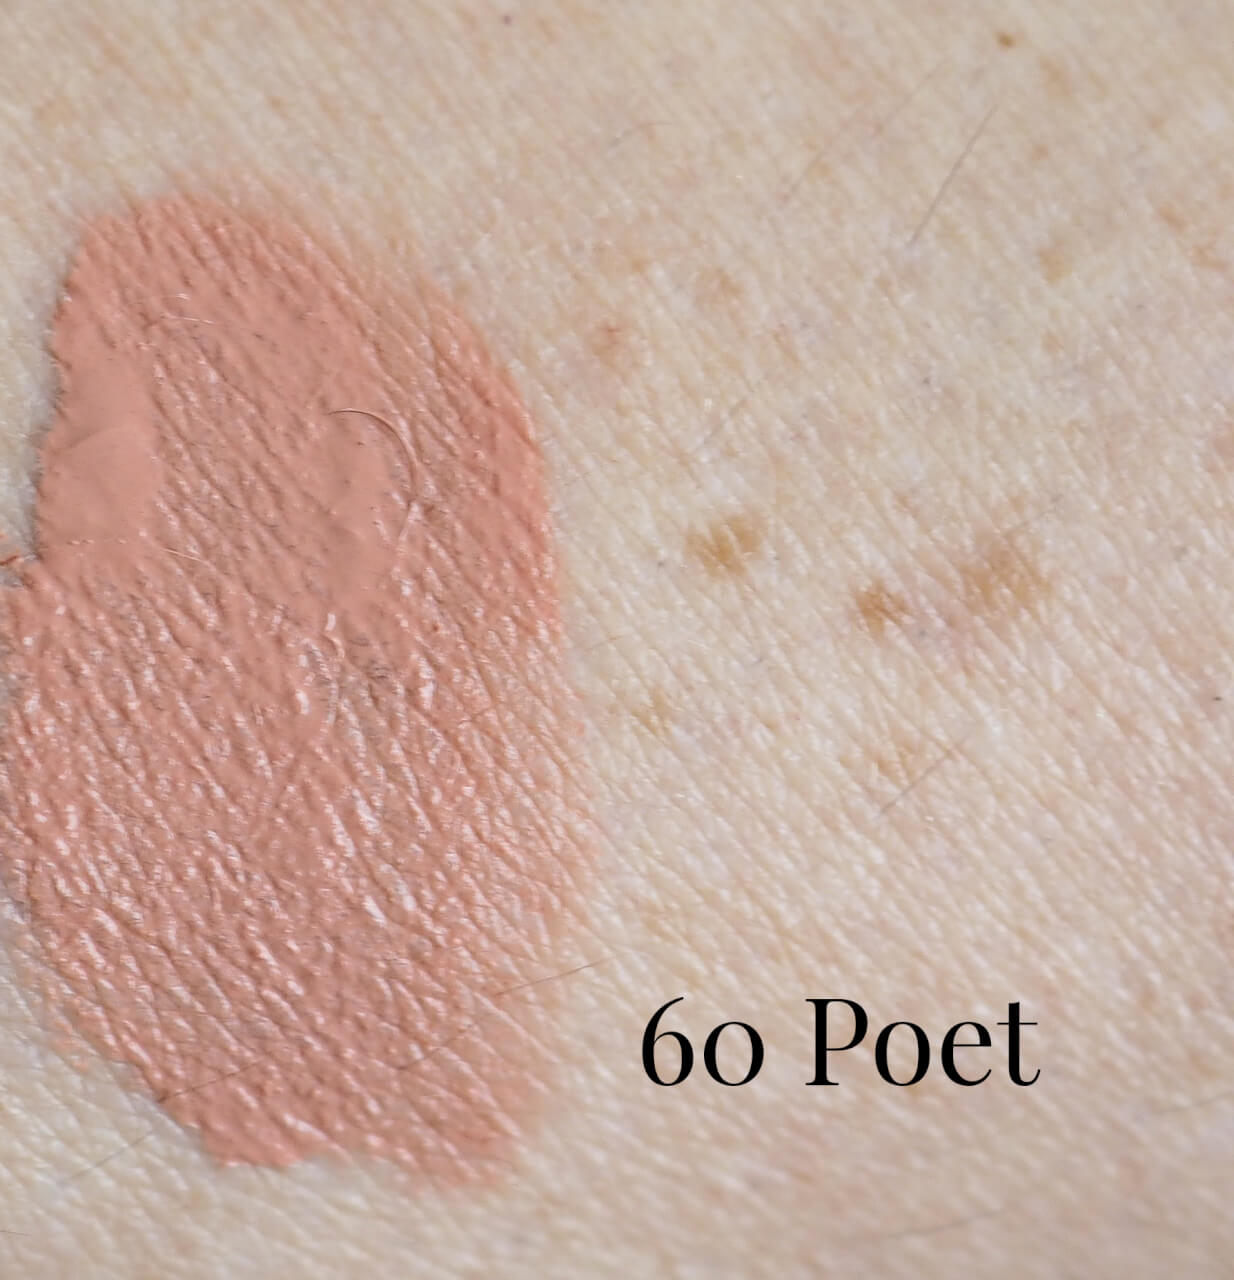 60 Poet Super Stay Matte Ink